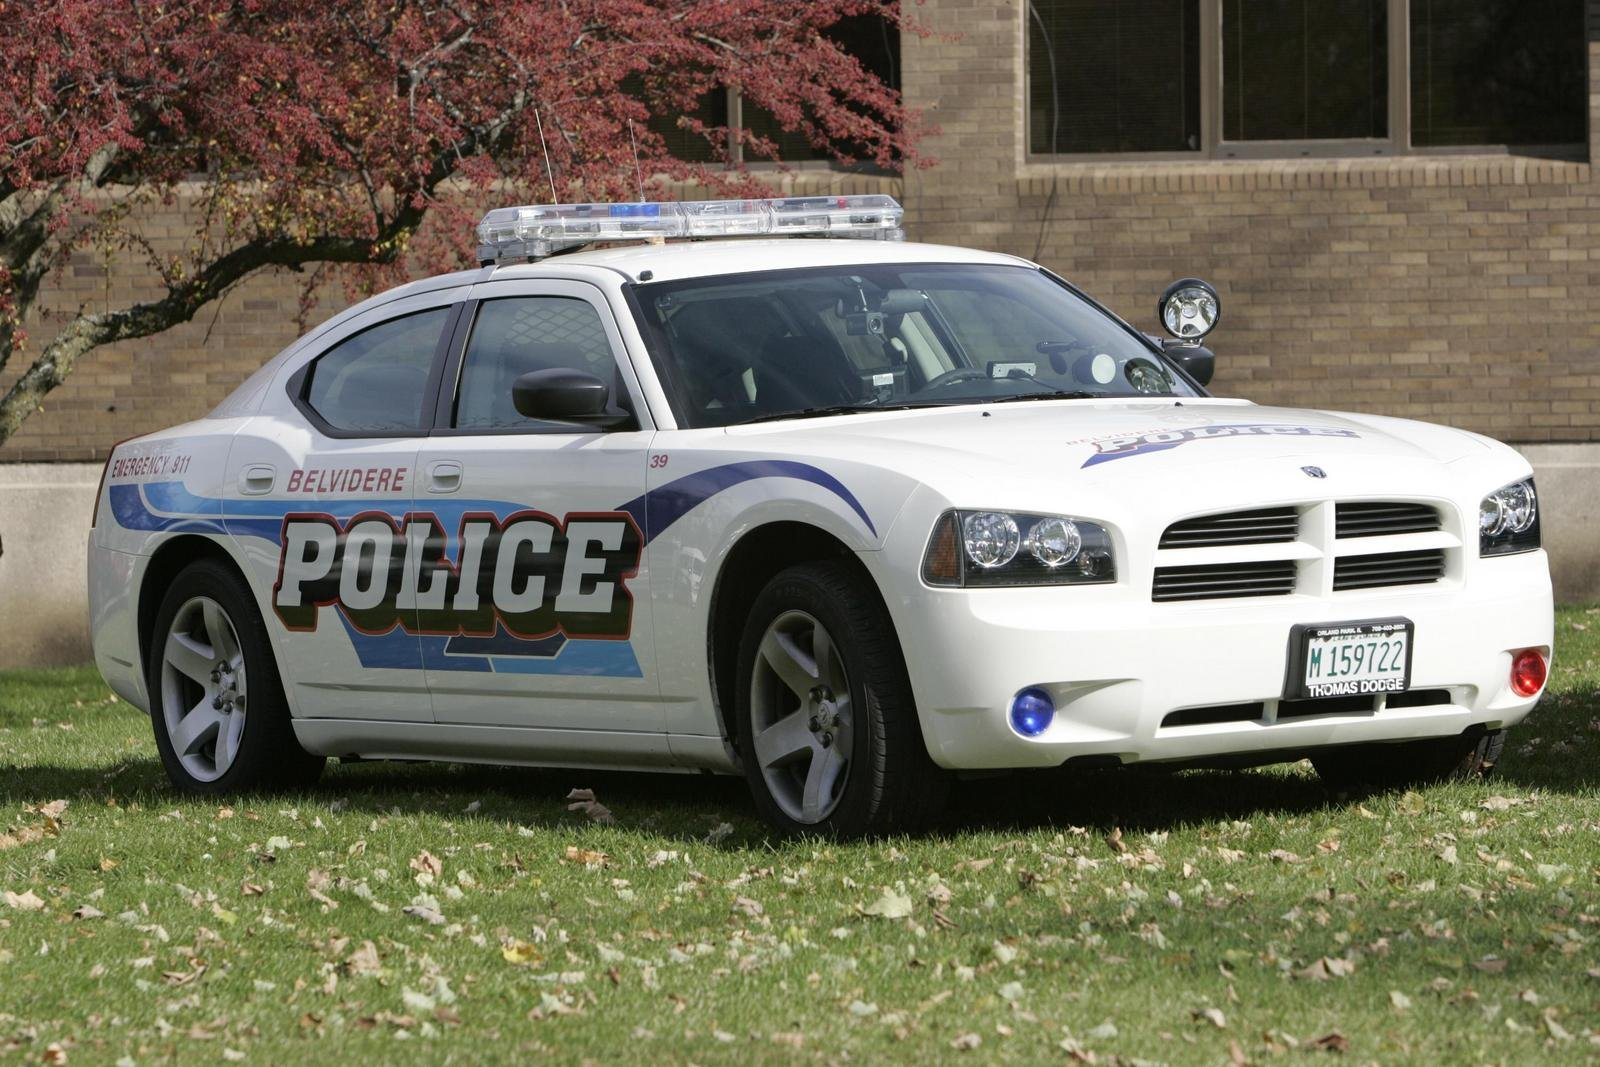 2006 dodge charger 3 5 liter v6 police car news top speed. Black Bedroom Furniture Sets. Home Design Ideas